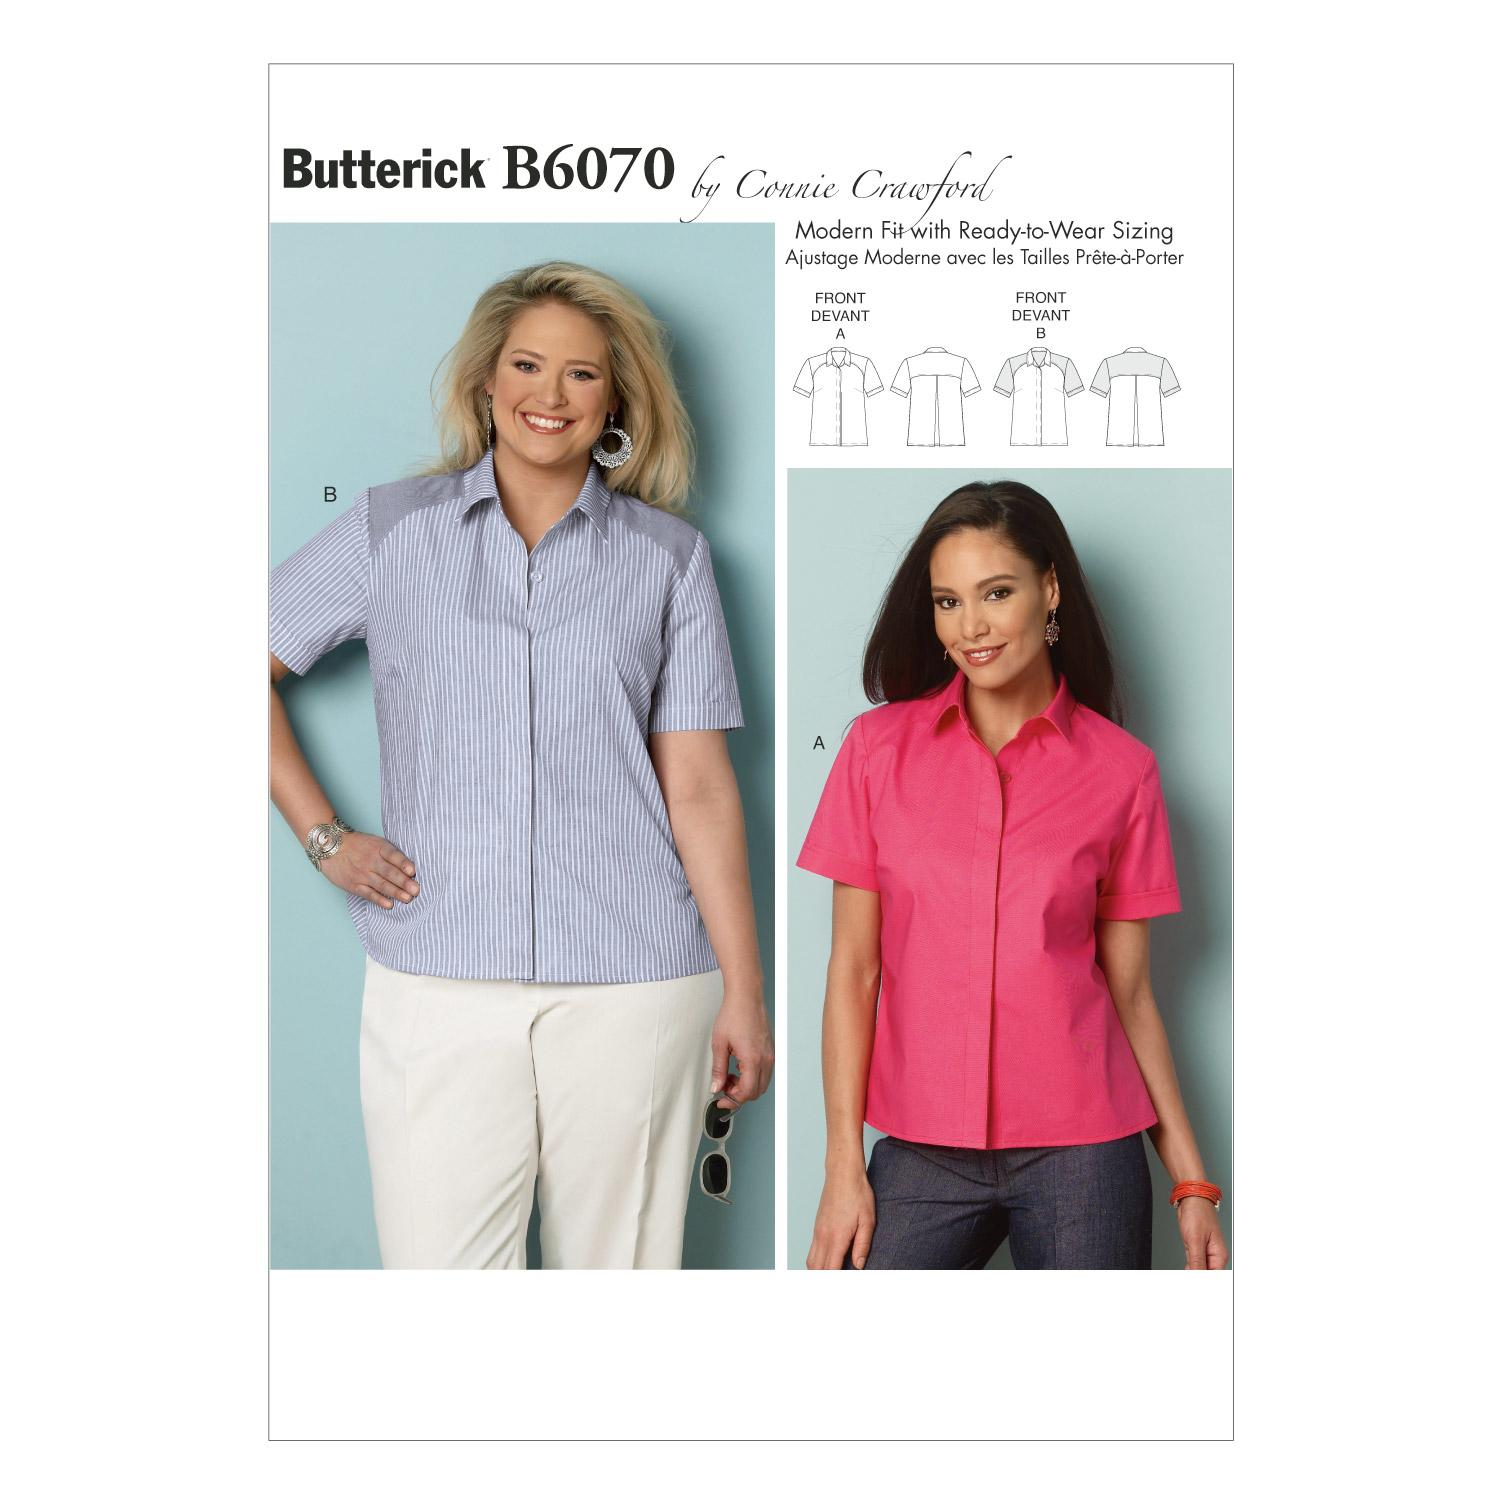 Butterick B6070 Misses'/Women's Shirt